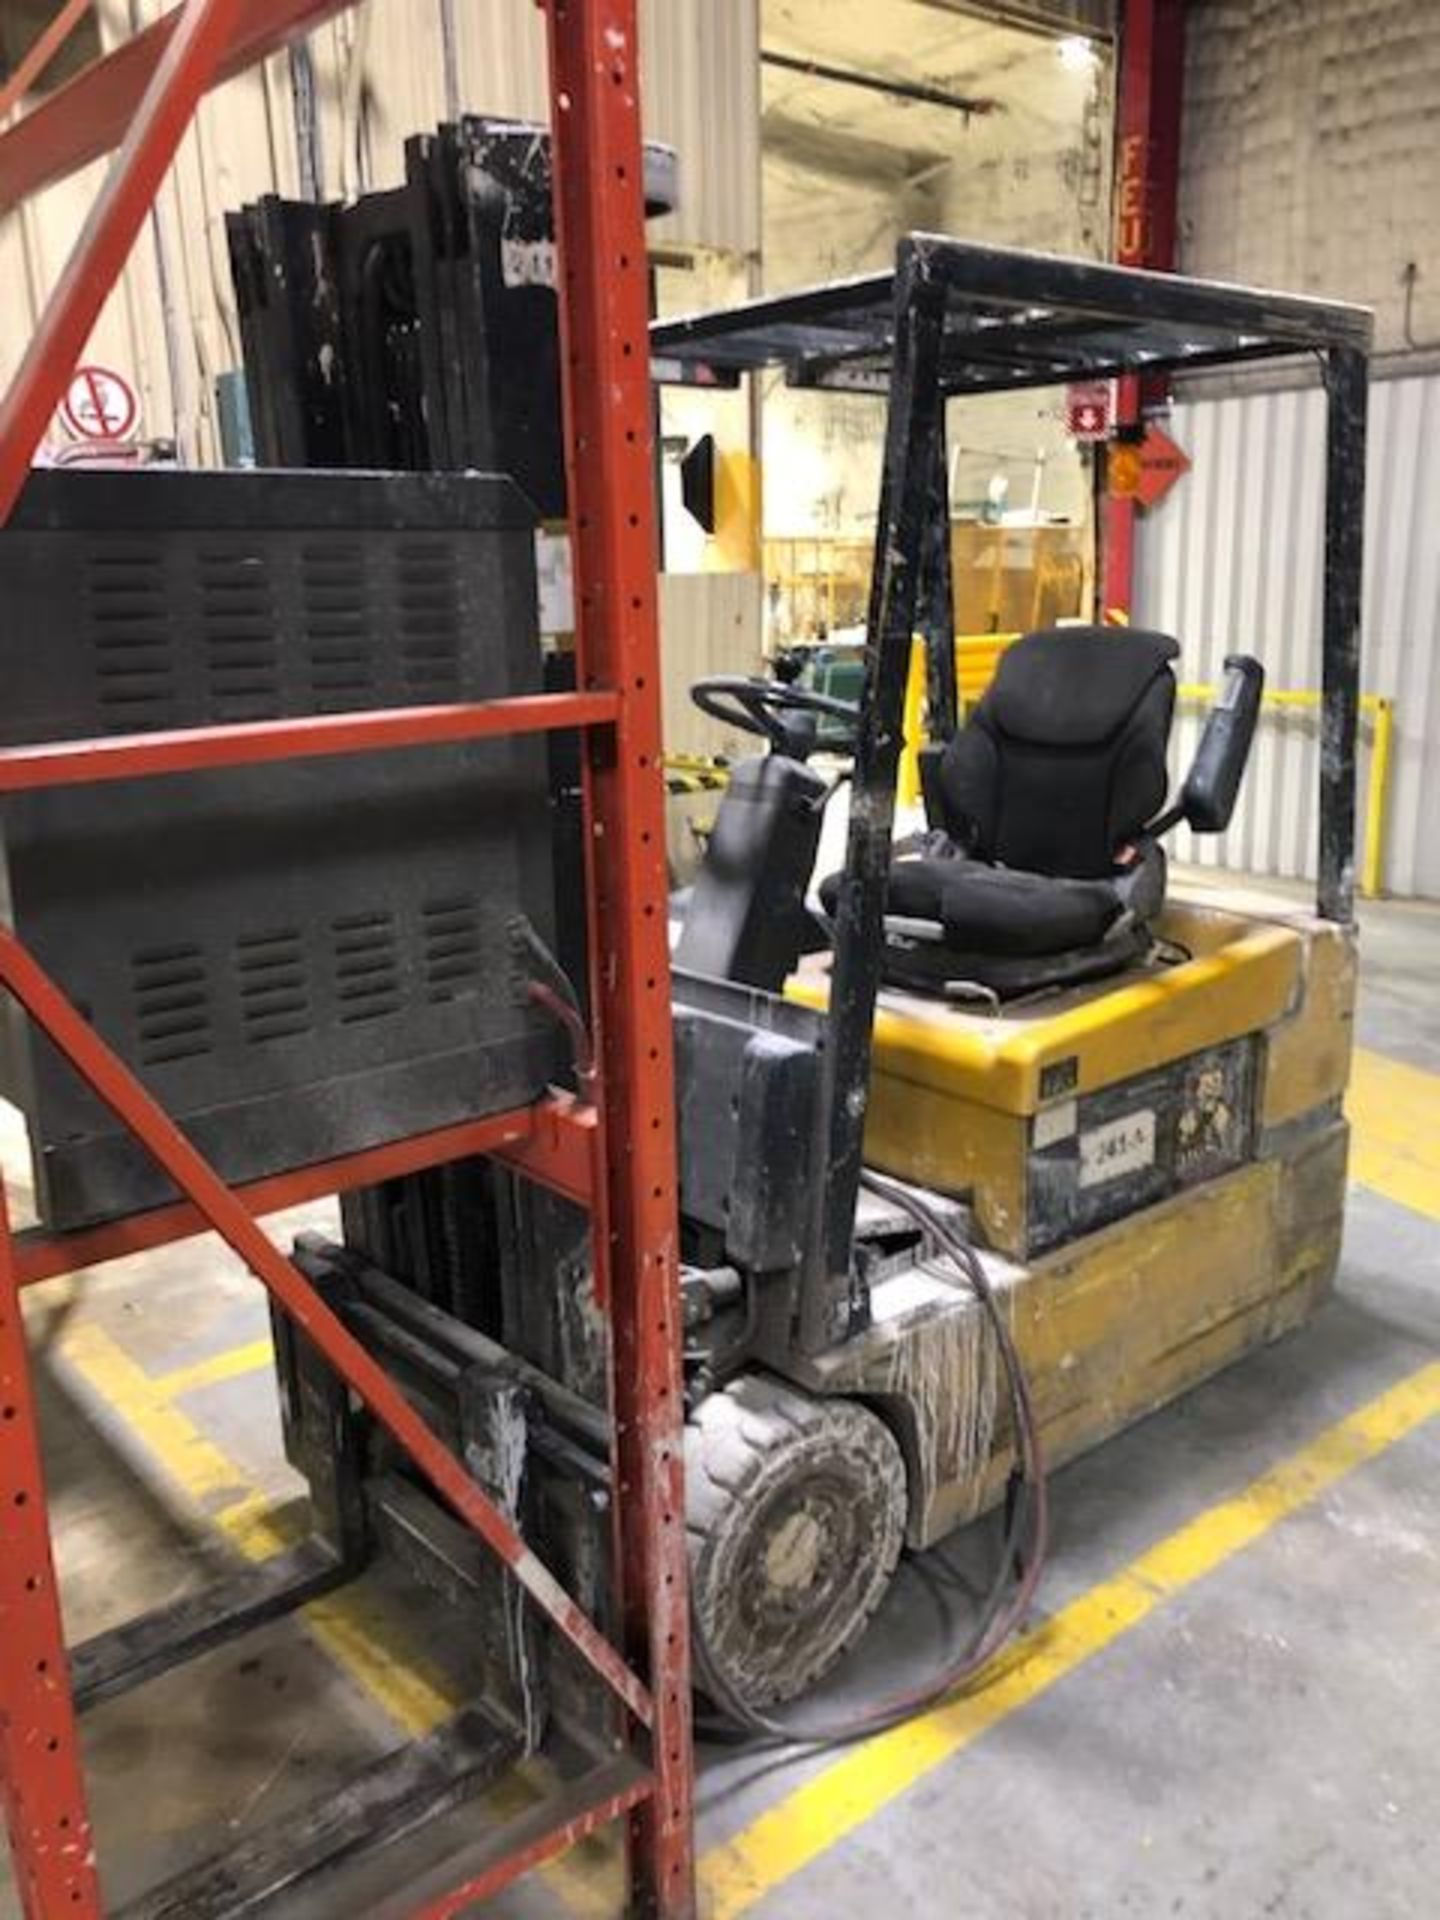 Lot 56 - 2001, electric forklift Yale, 3,350lbs, 3 stage mast, side shift, 3 wheels, Model: